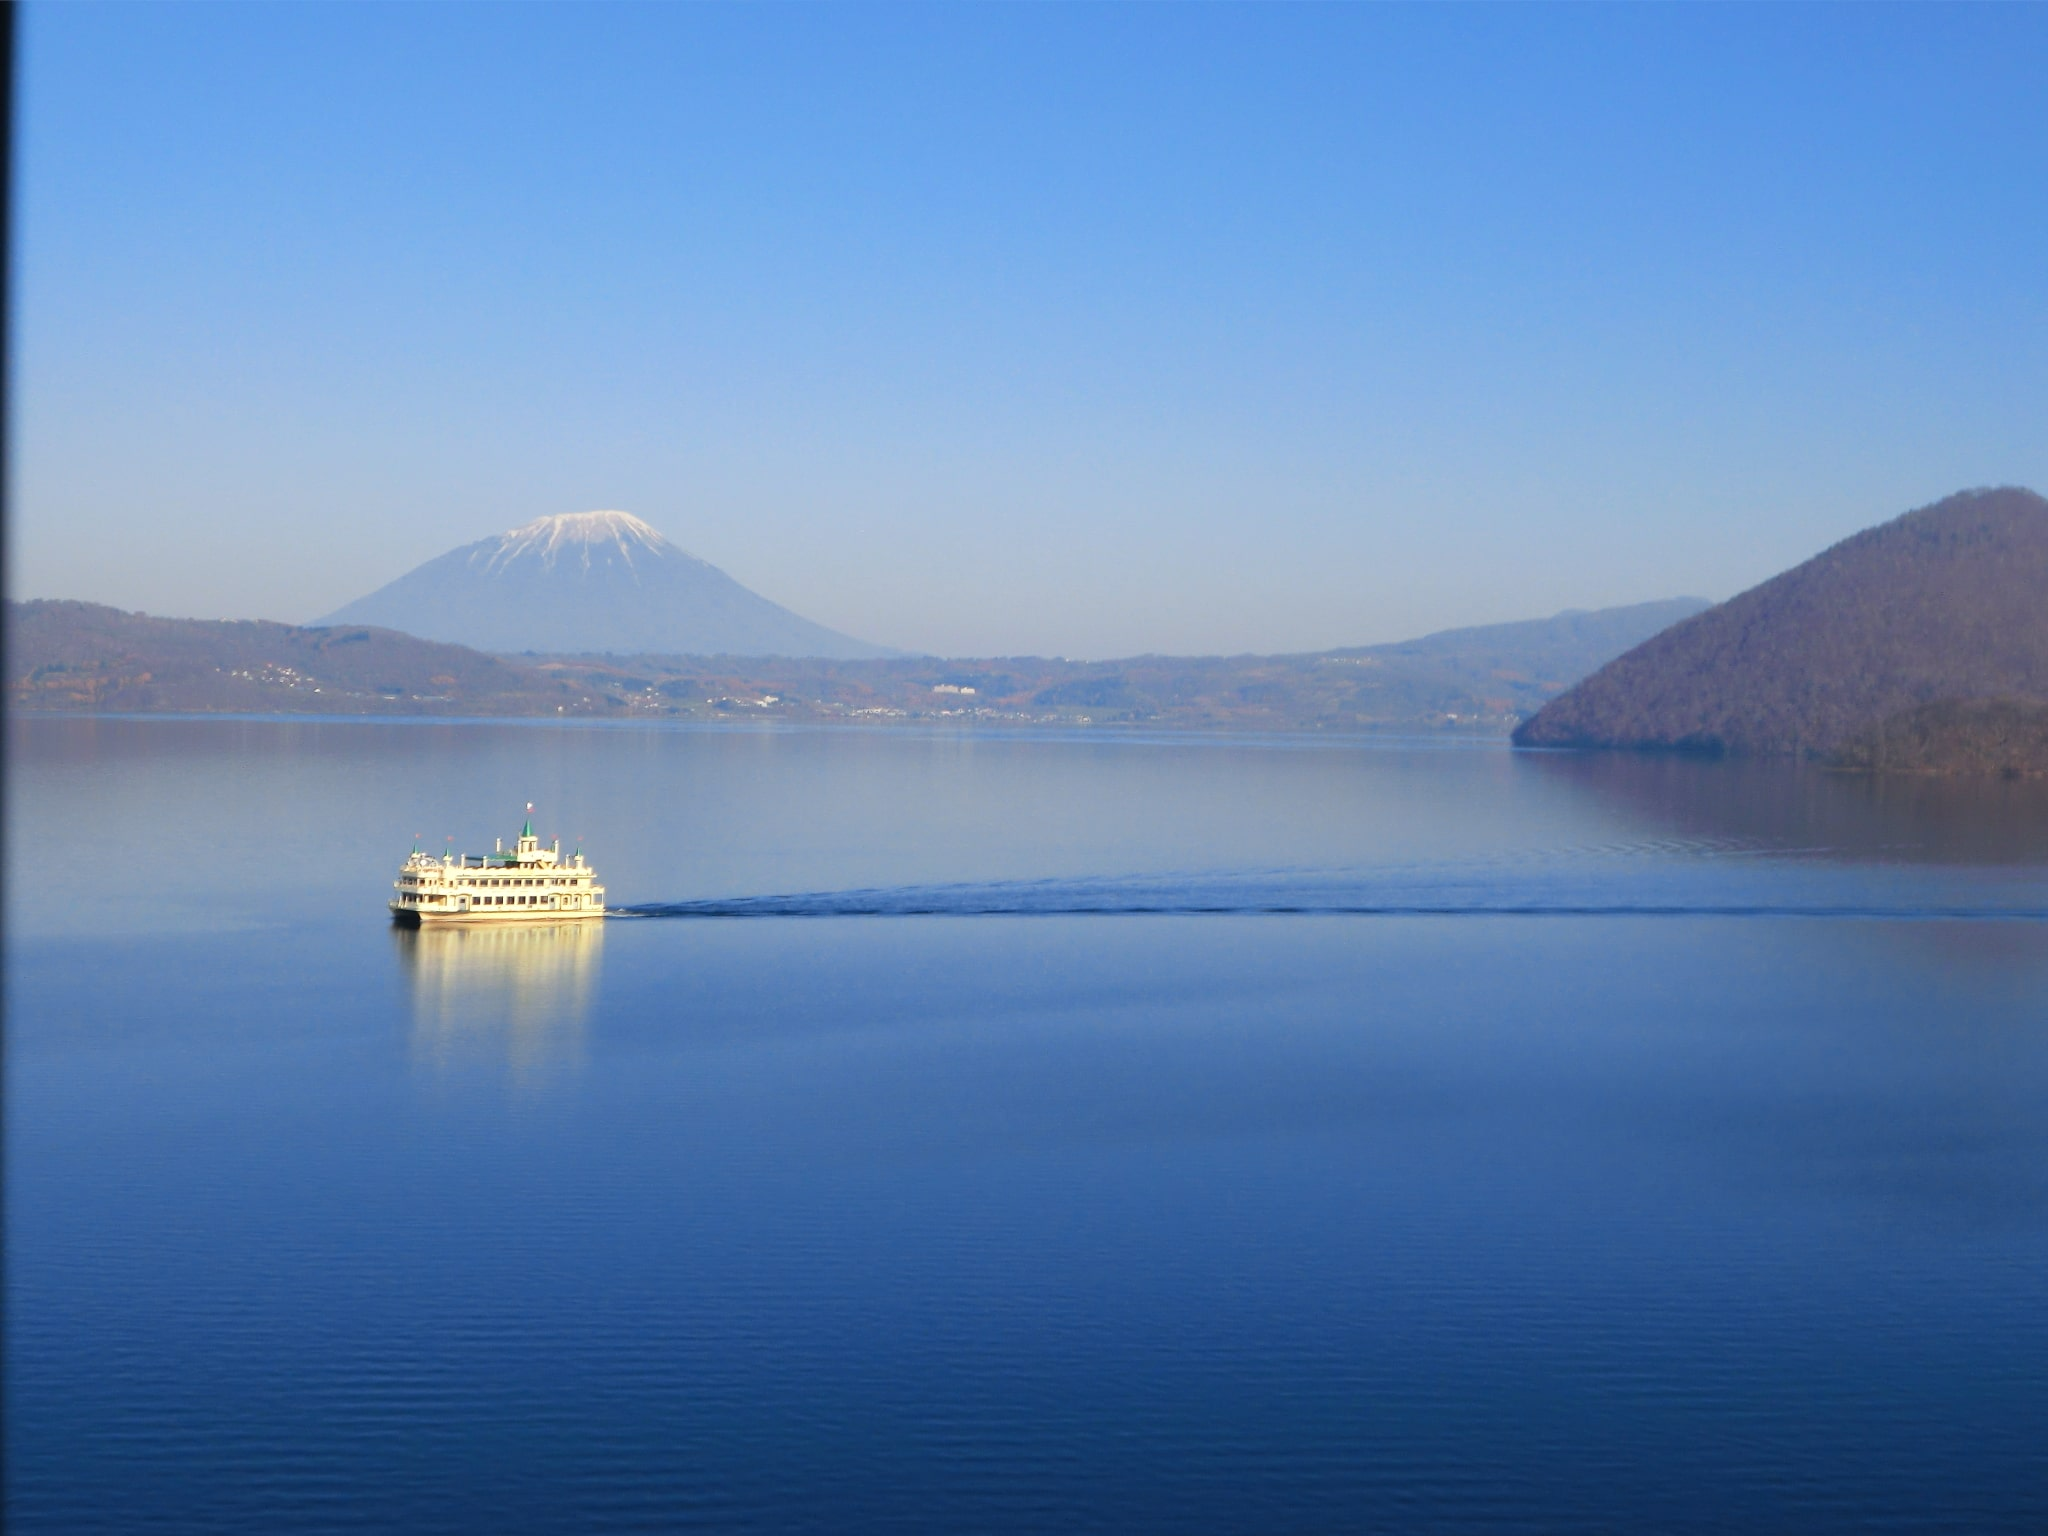 cruise on Lake Toya